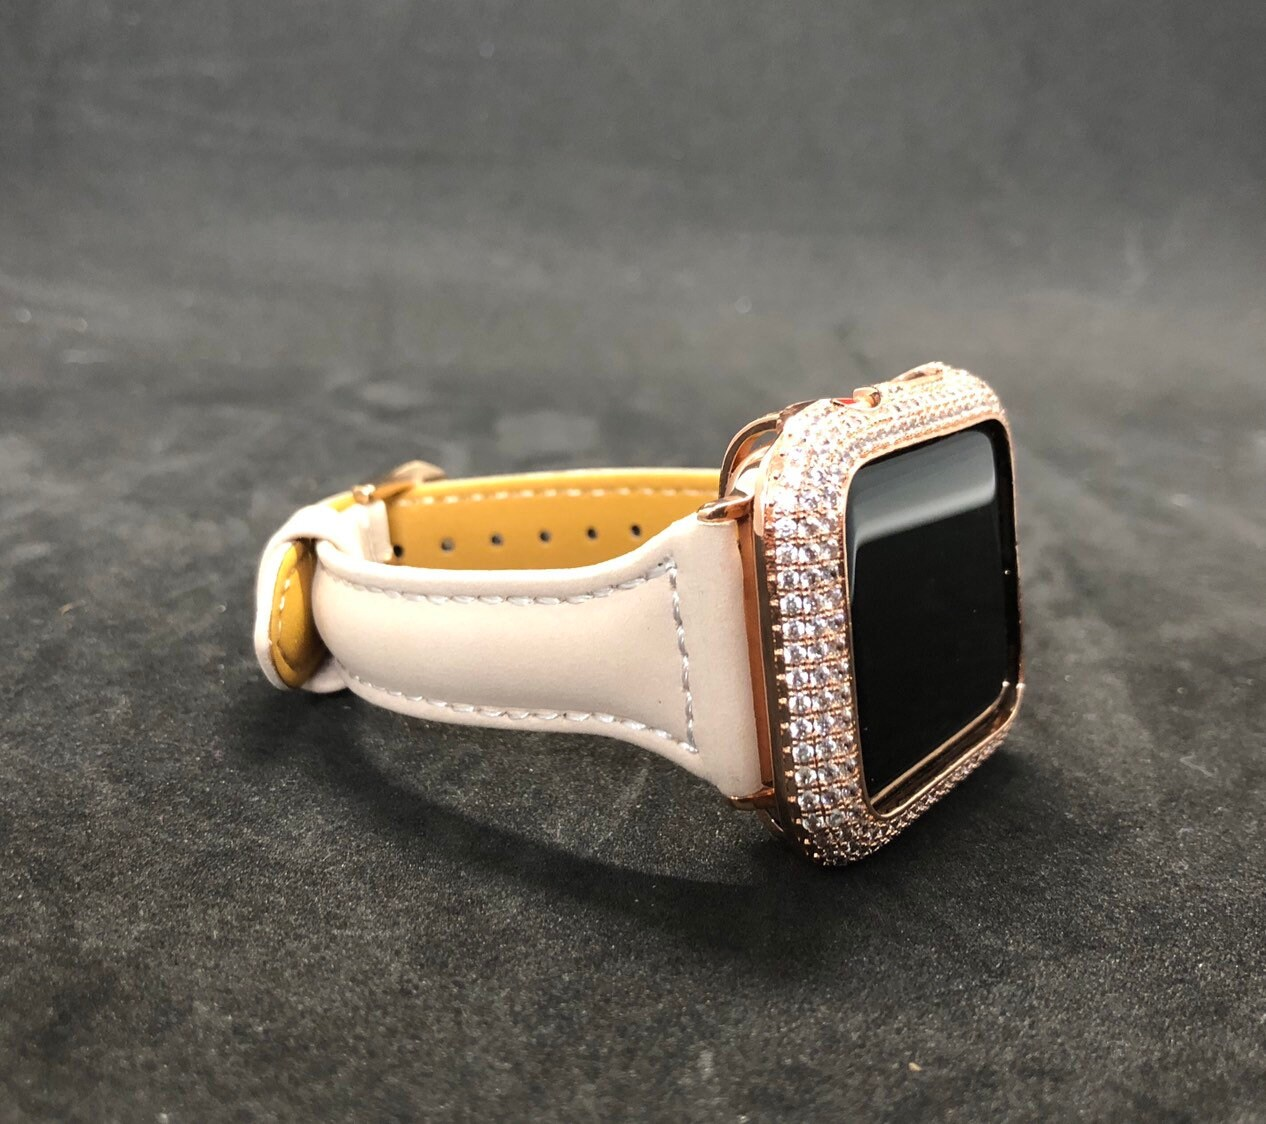 38mm 40mm 42mm 44mm apple watch rose gold leather band